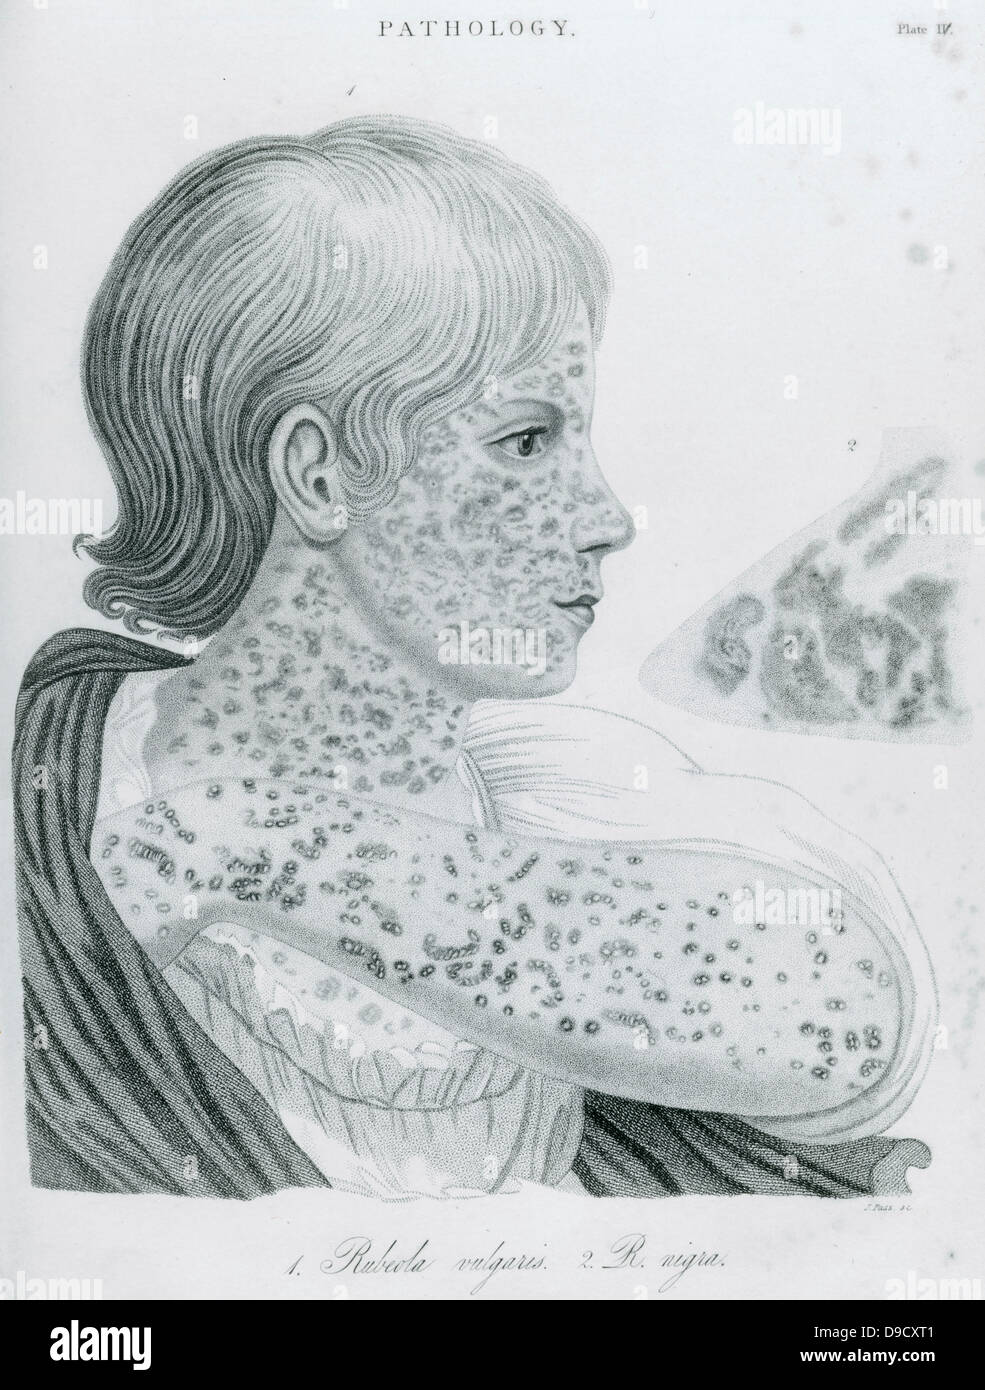 Child with Measles - Rubeola, morbilli. An attack of measles renders the patient vulnerale to secondary infections, Stock Photo